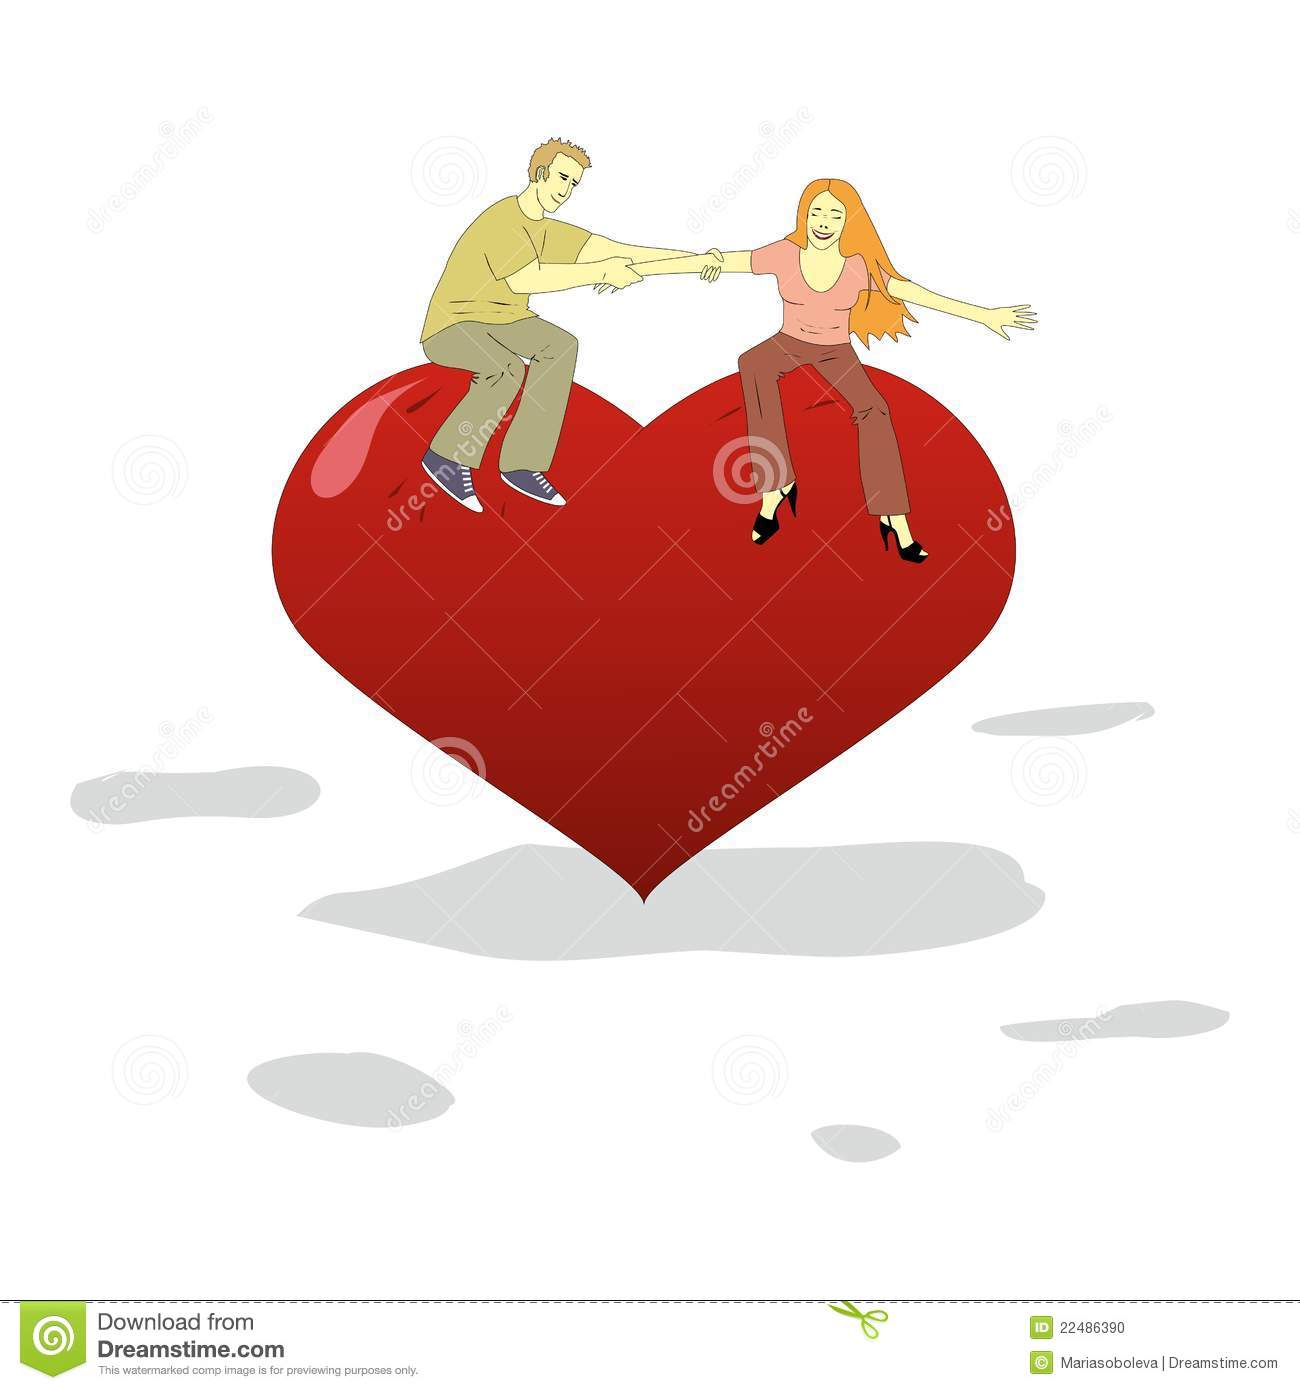 Young man and woman have fun on a big heart